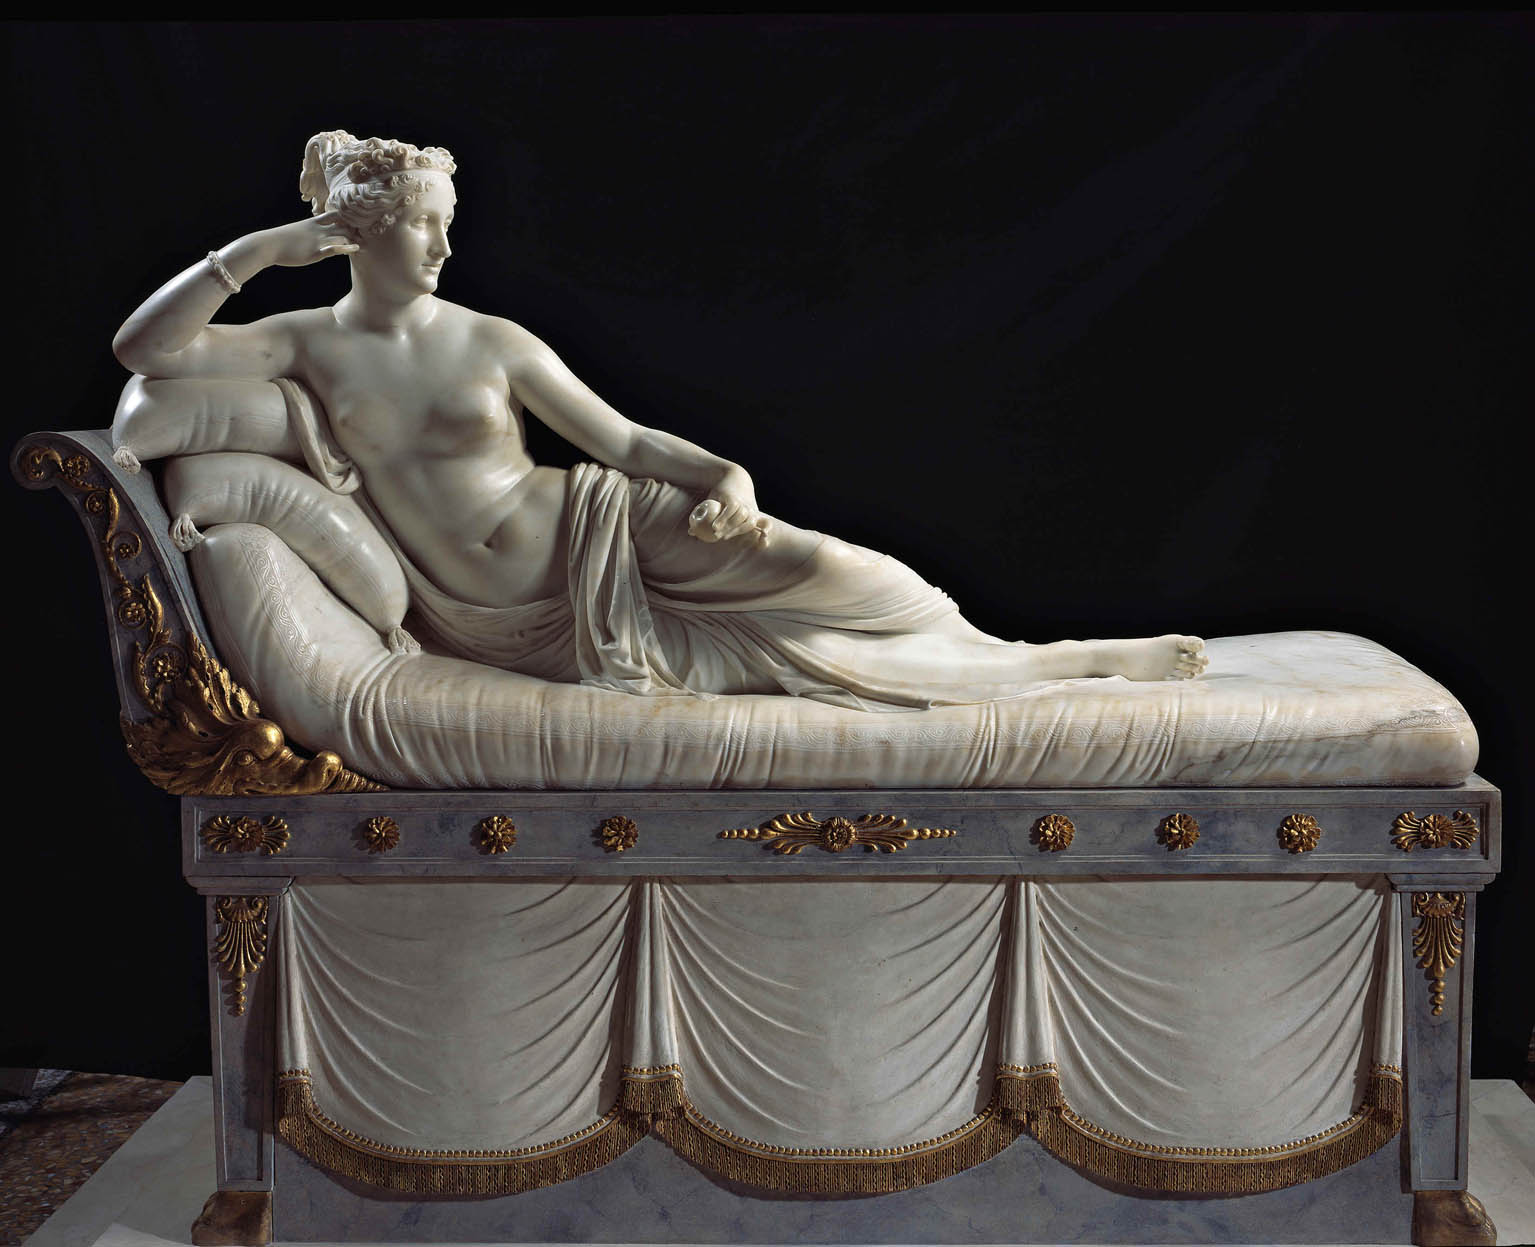 Paolina Borghese Bonaparte as Venus Victrix (1805-1808)